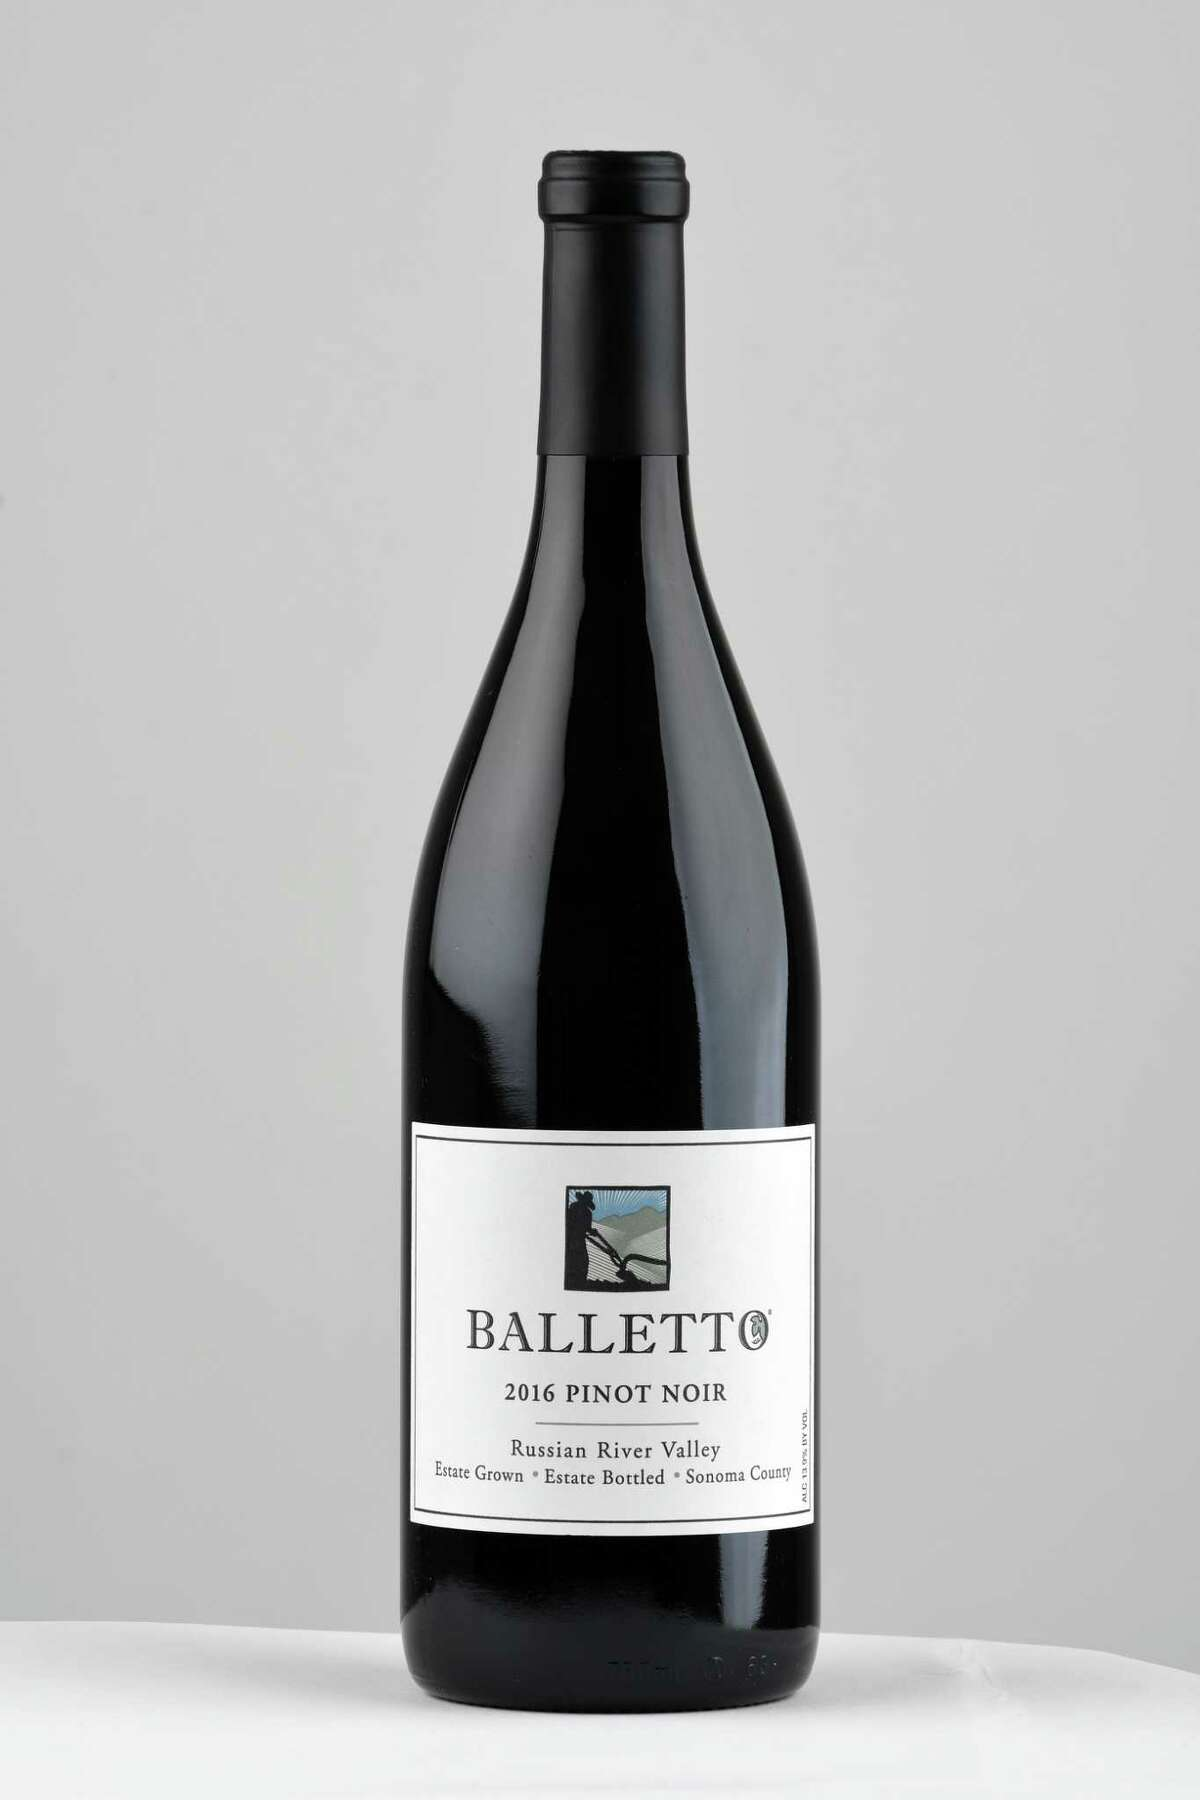 Balletto pinot noir on Tuesday, July 16, 2019, in Colonie, N.Y. (Will Waldron/Times Union)